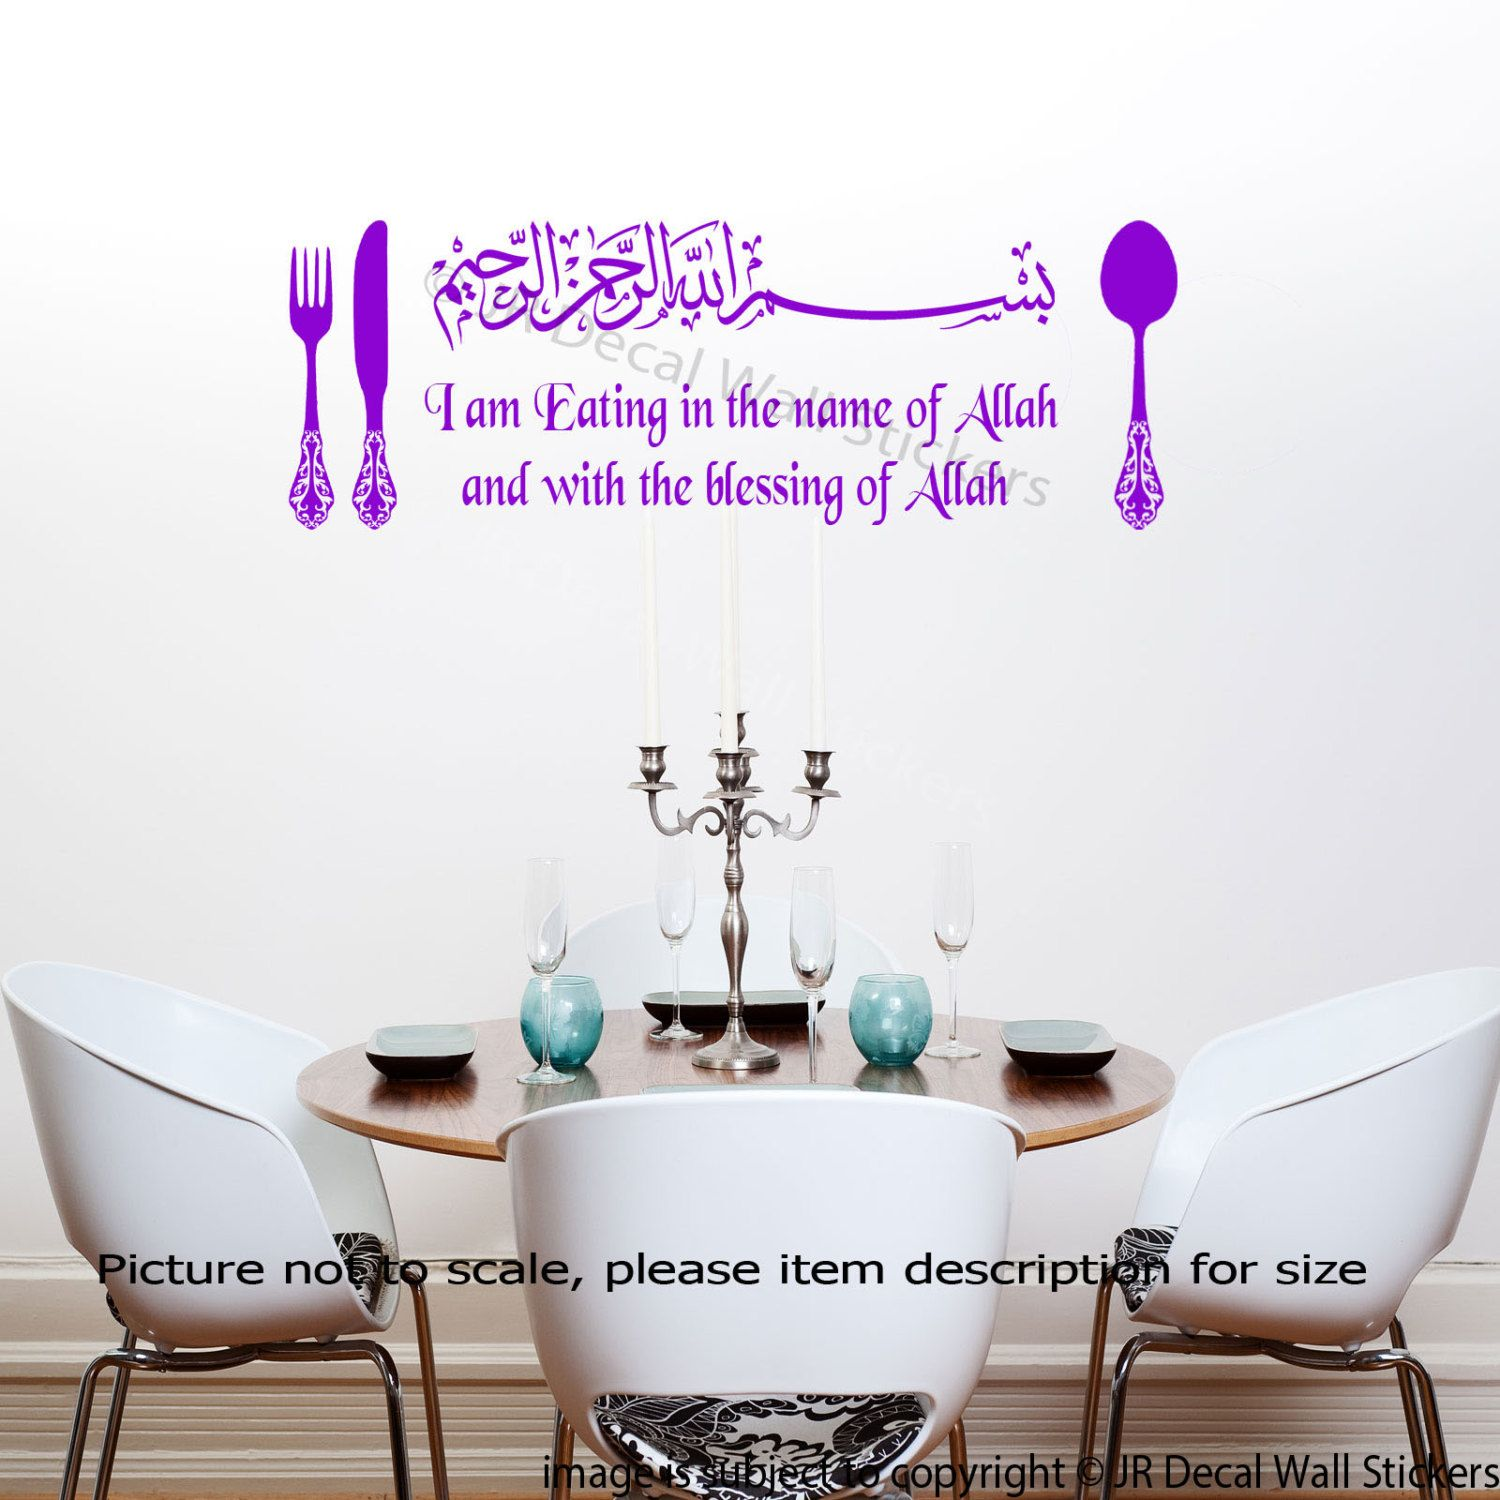 dining kitchen wall art stickers eating in the name of allah dining kitchen wall art stickers eating in the name of allah bismillah removable decal vinyl transfer